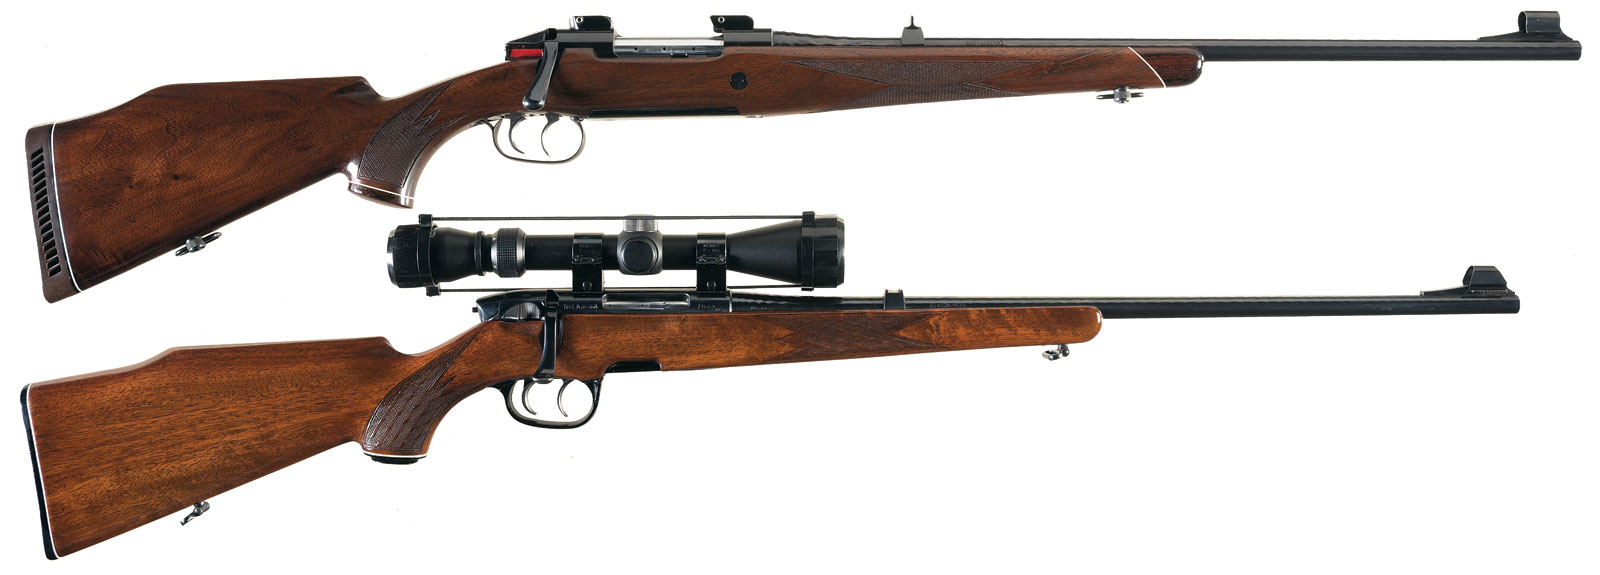 Top rifle is a Mannlicher-Schoenauer M72 rifle. Below it is a Steyr Mannlicher of the same period.